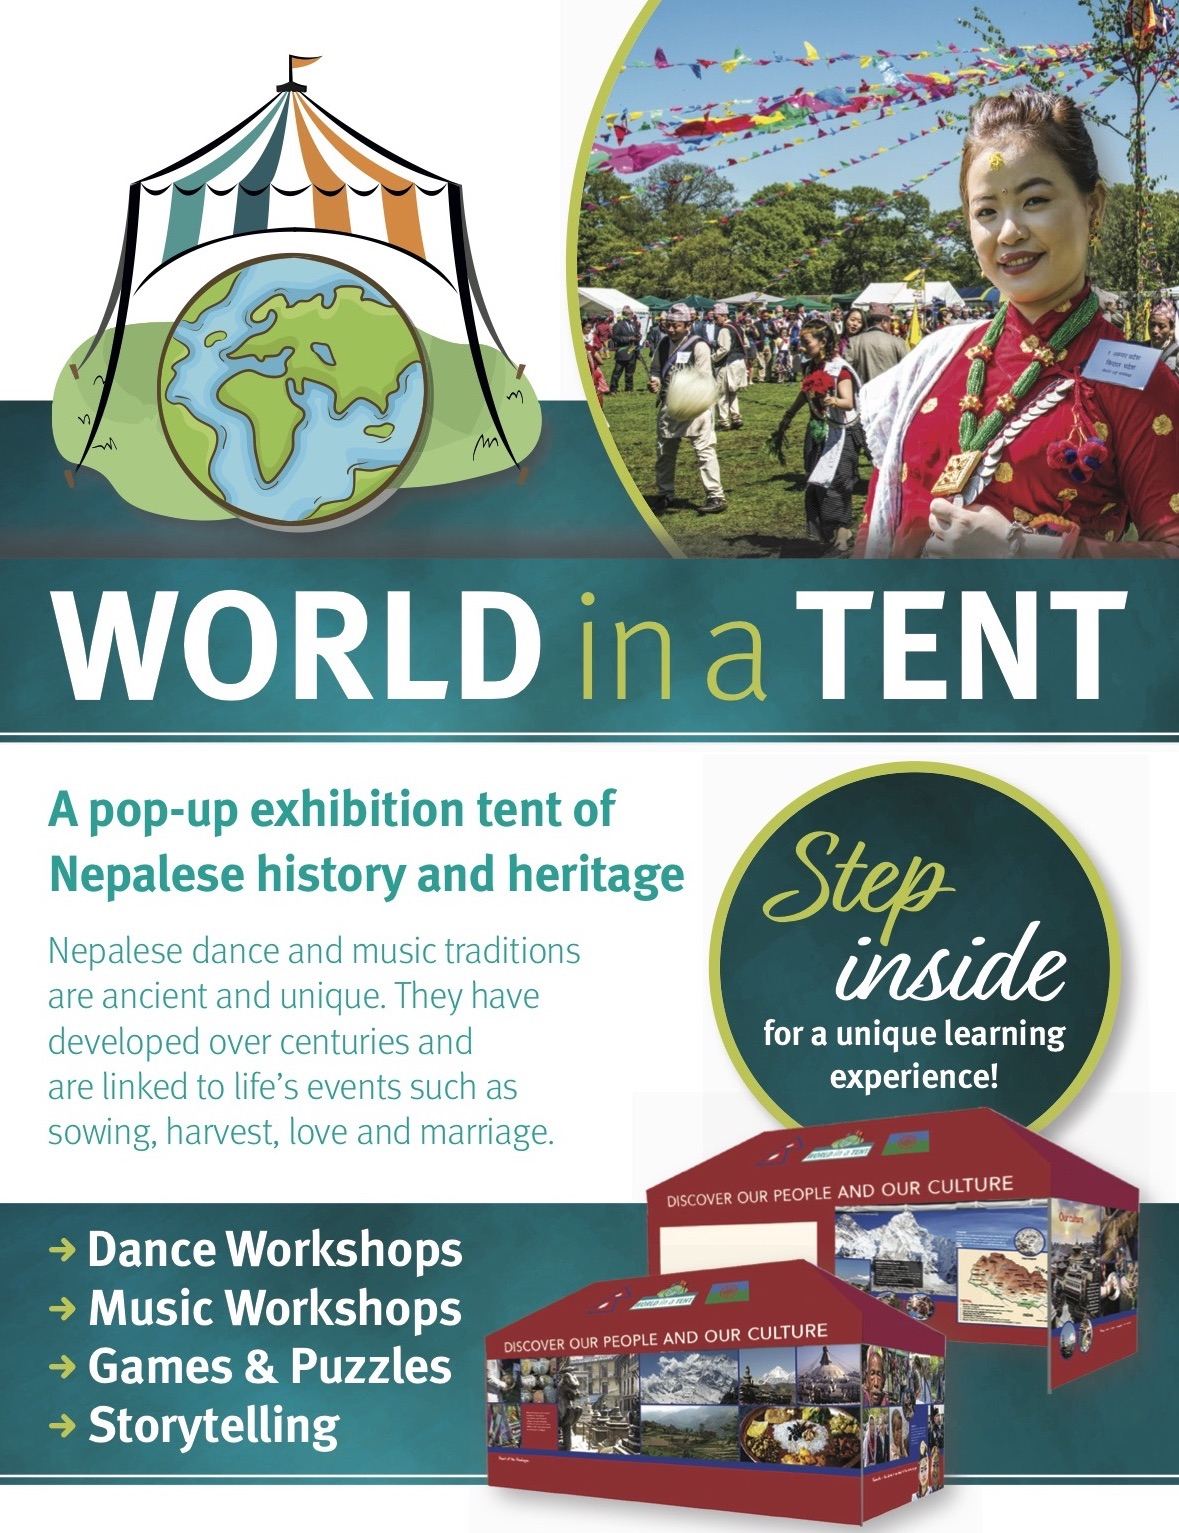 World in a Tent Exhibition @ Cheriton Library